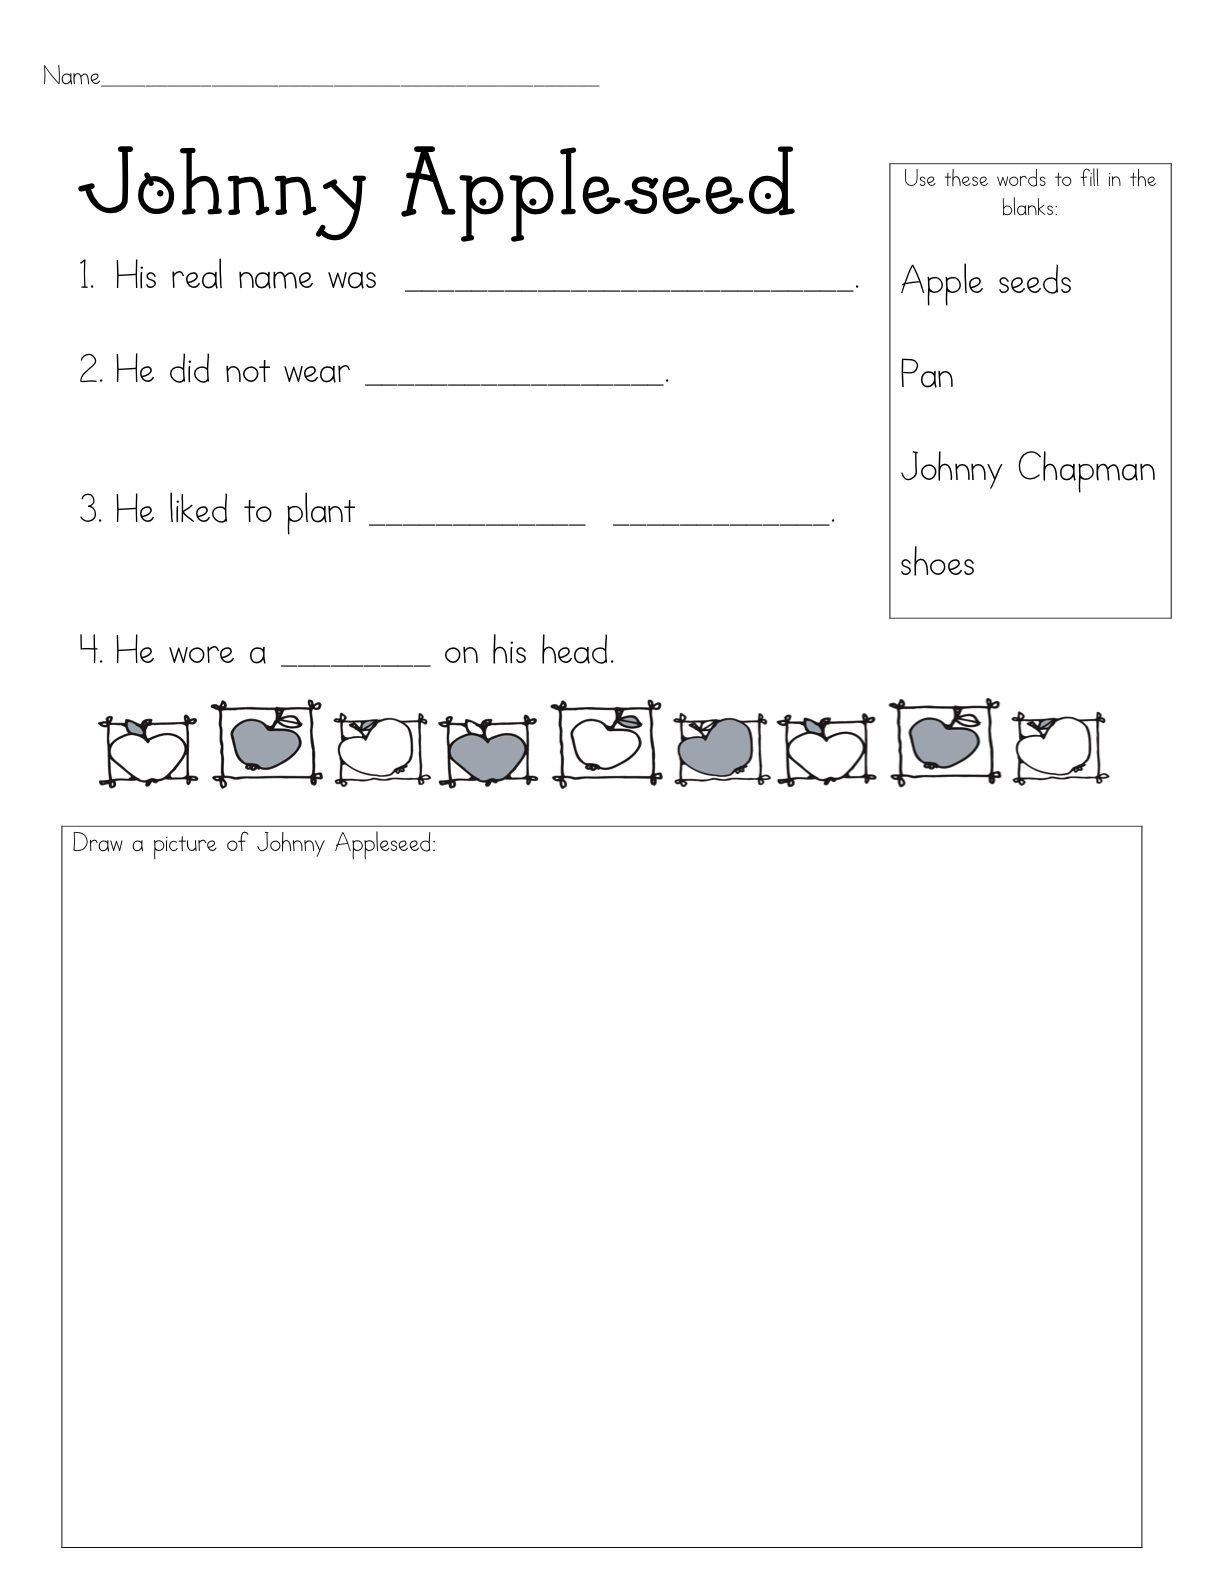 Worksheets Johnny Appleseed Worksheets apples im pretty sure most kinder 1st grade and 2nd johnny appleseed fill in the blank